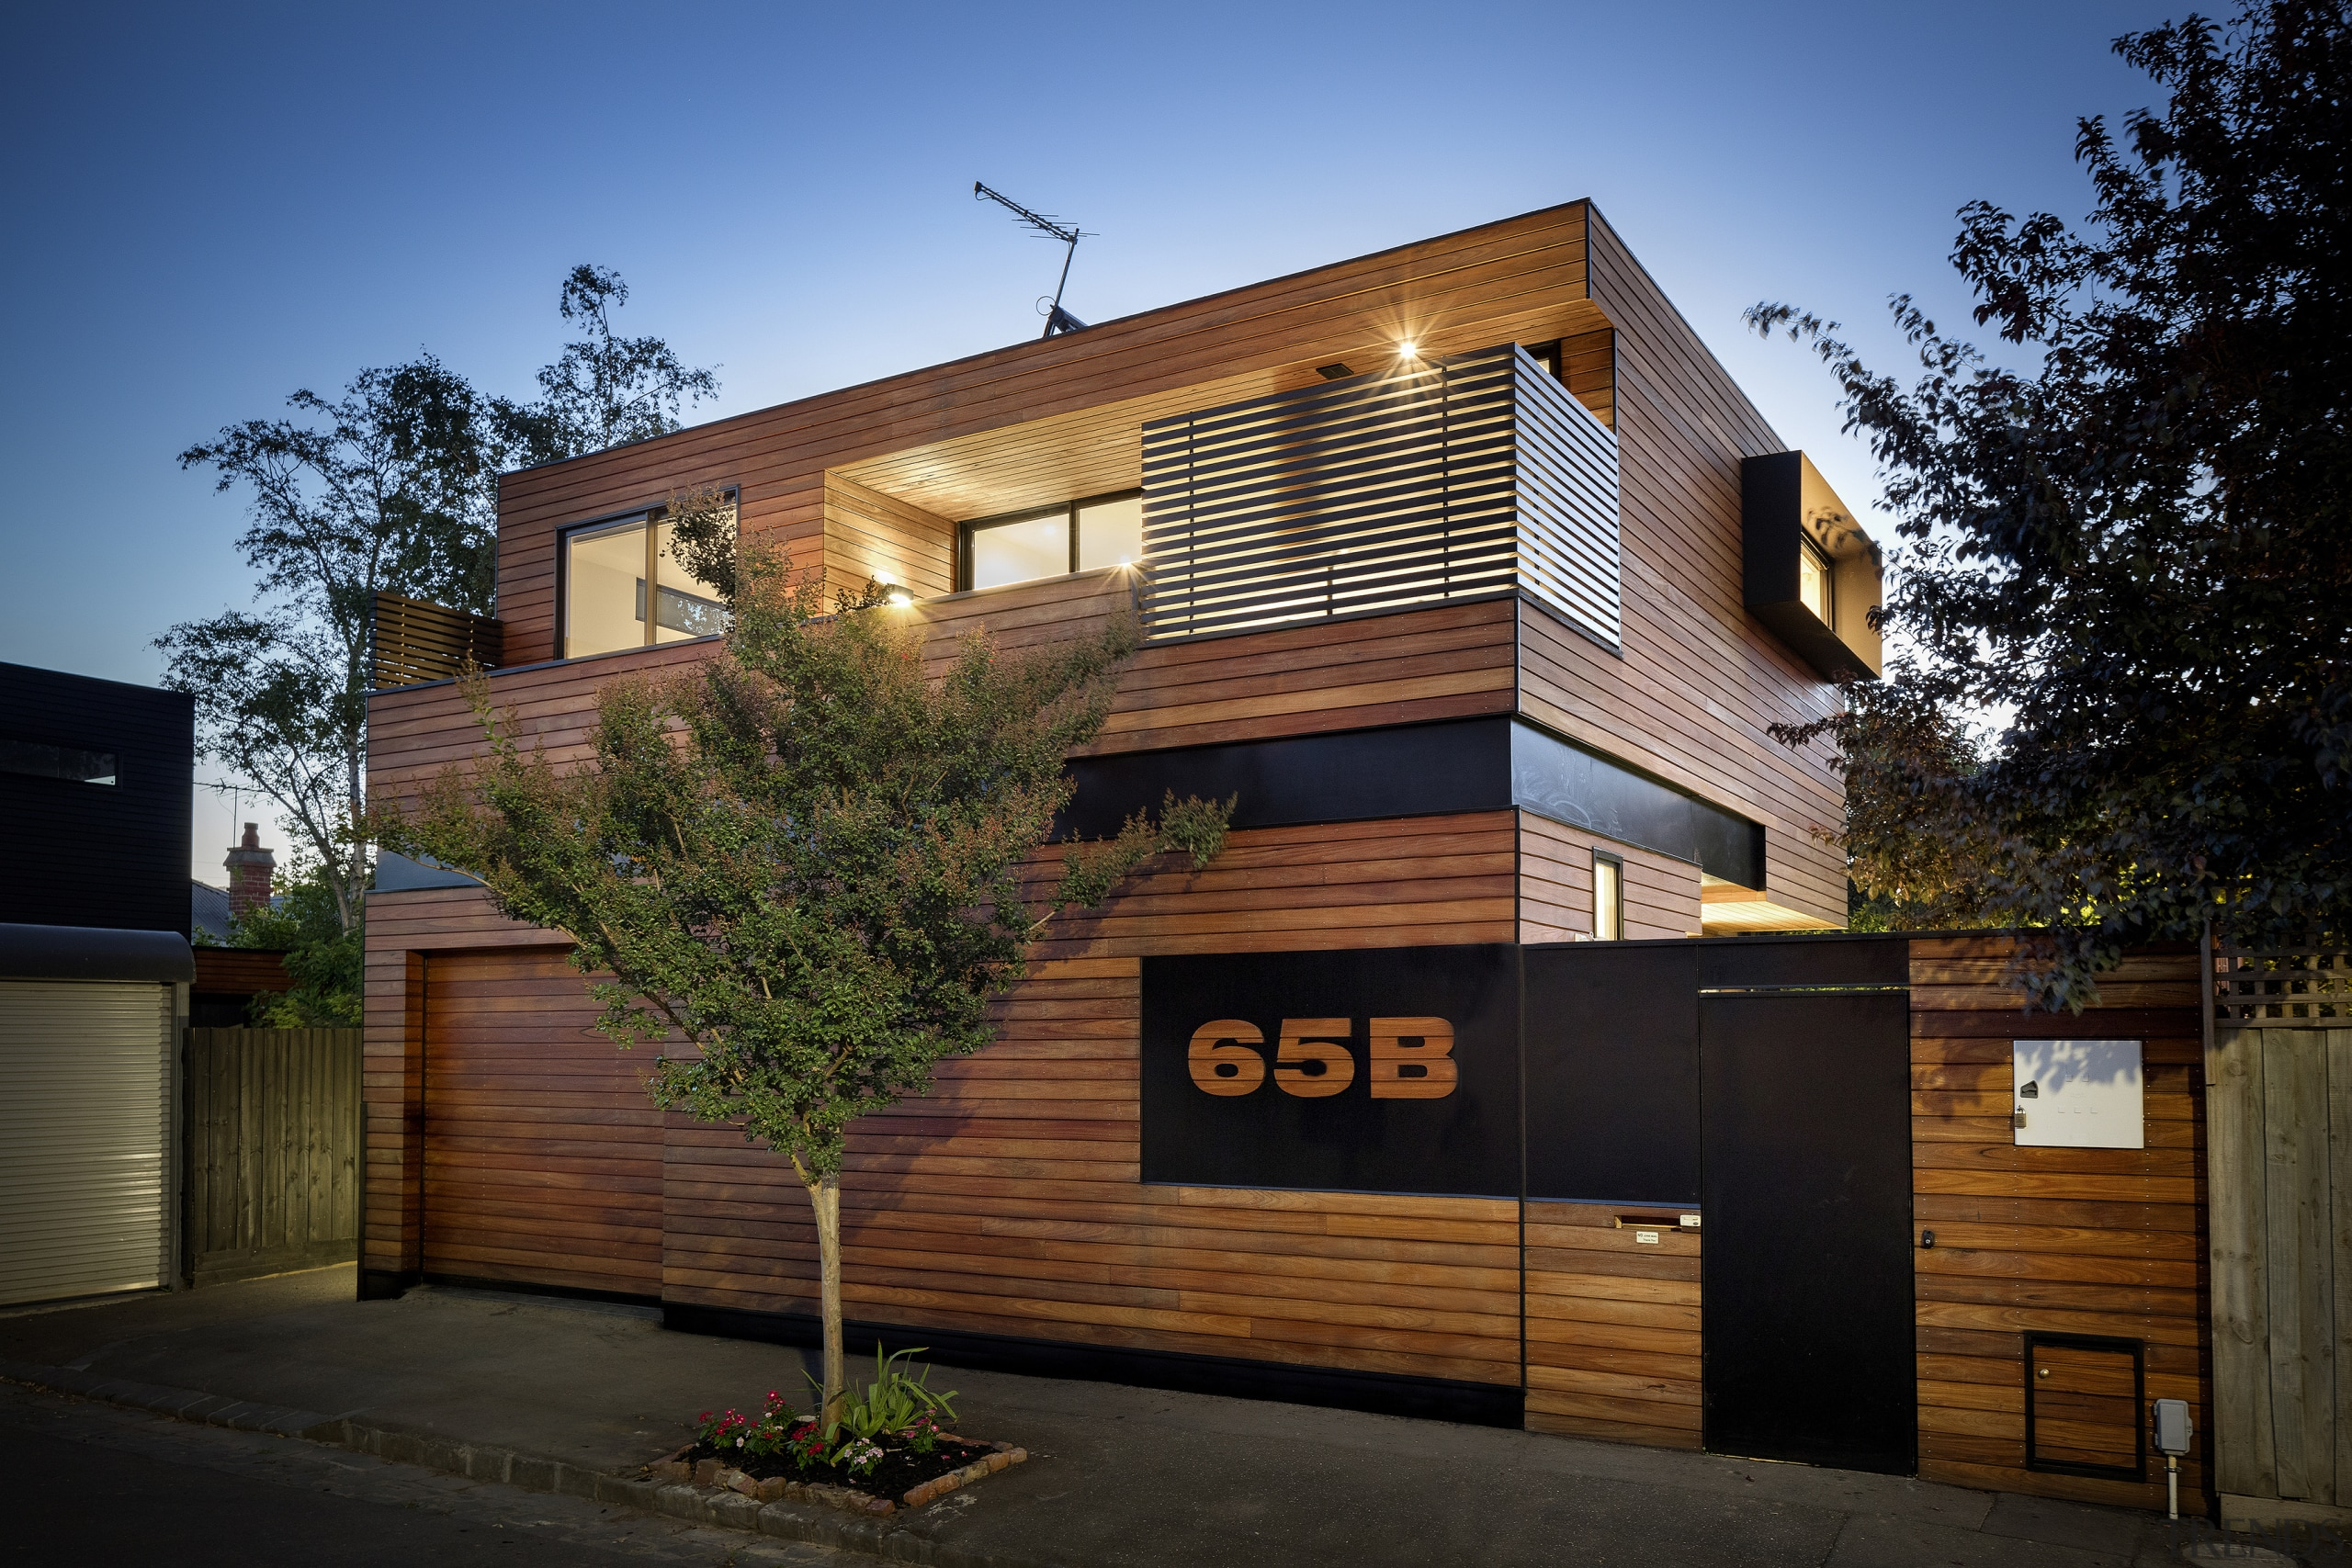 The owners required a small footprint new single architecture, building, elevation, facade, home, house, property, real estate, residential area, siding, black